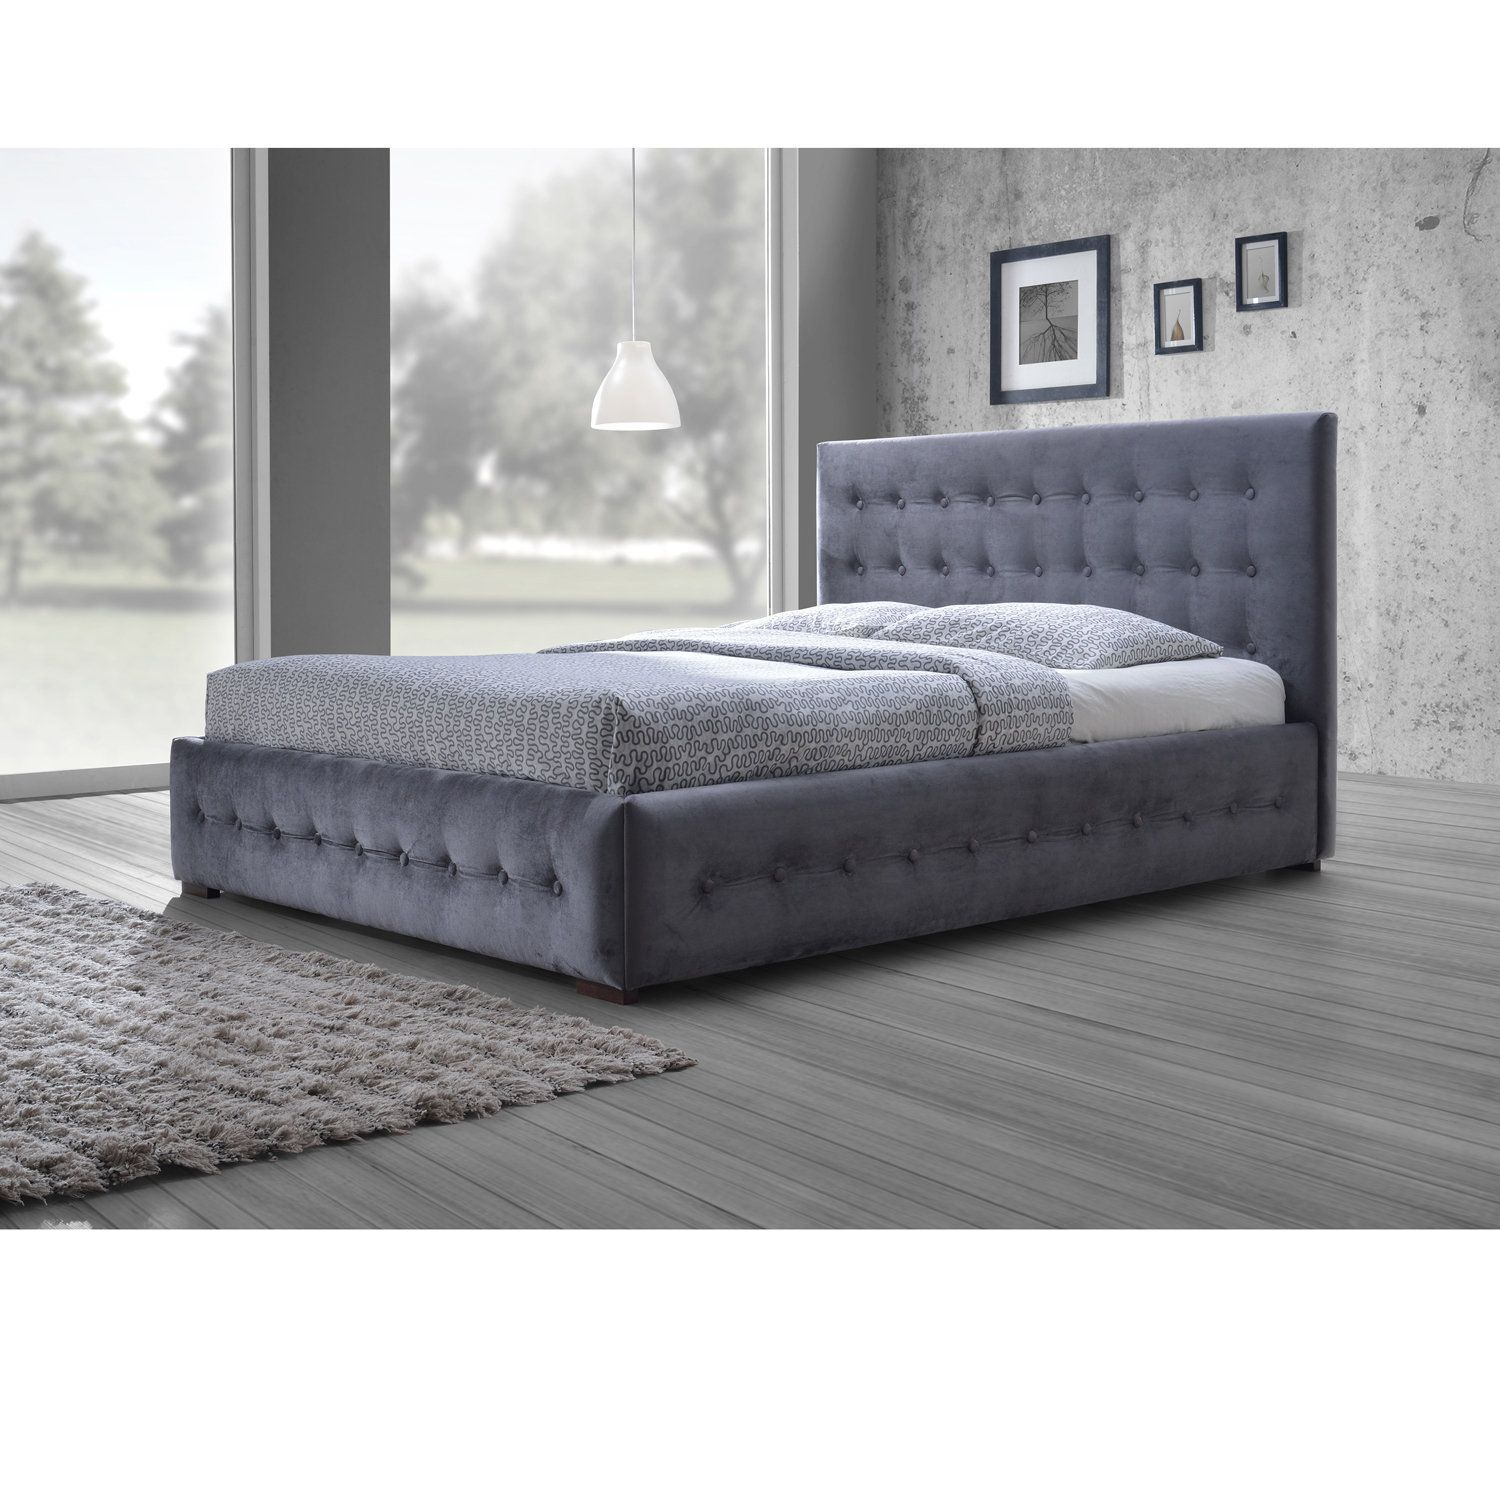 Baxton Studio Pittman Contemporary Grey Fabric Upholstered Platform Bed  With Button Tufted And Winged Headboard